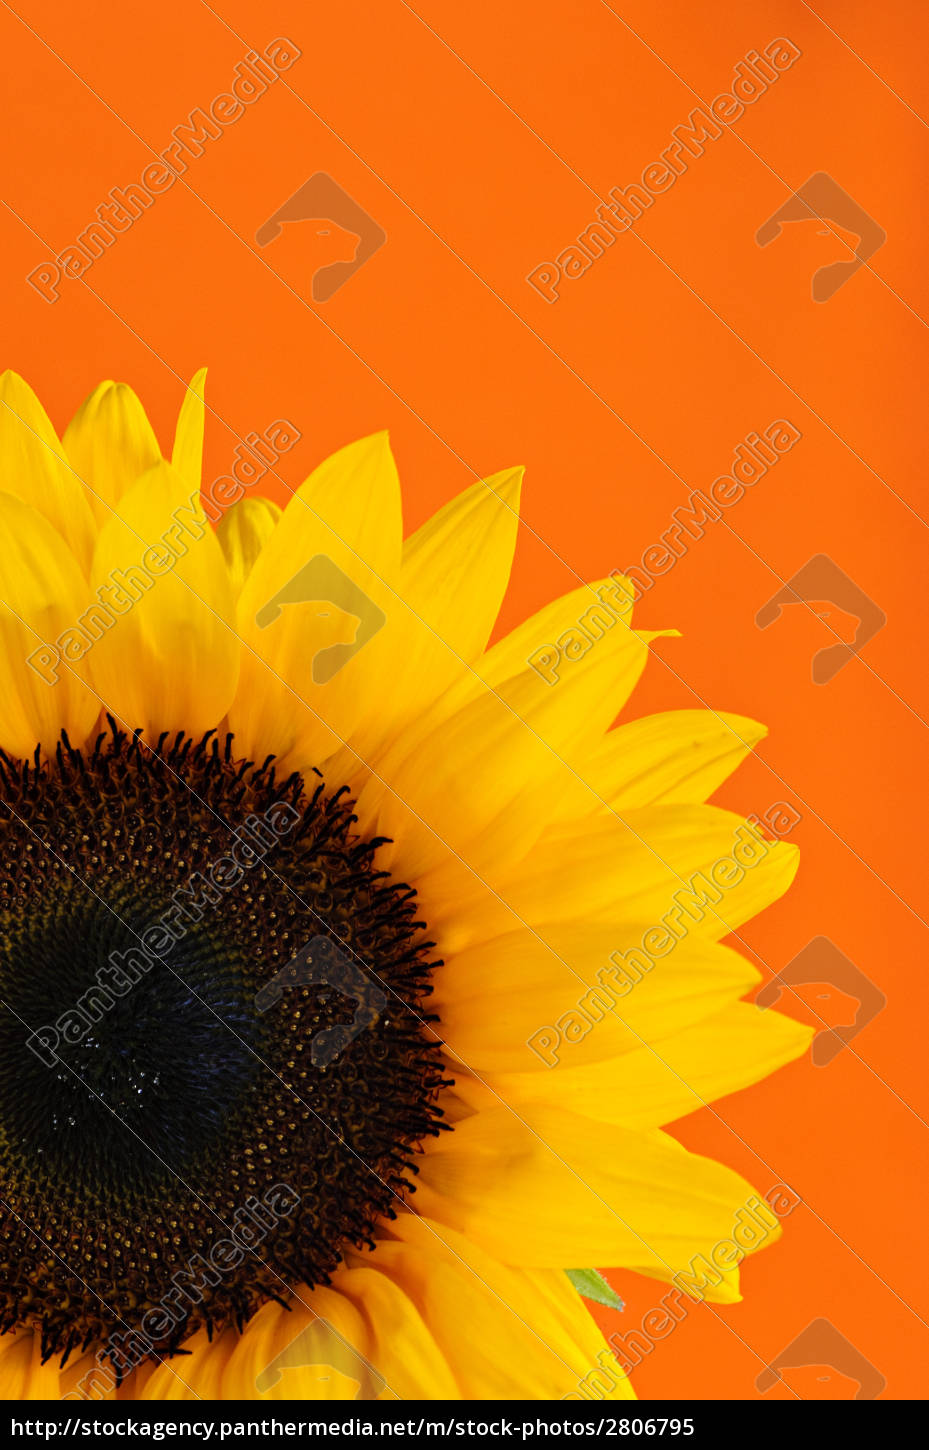 sunflower, closeup - 2806795